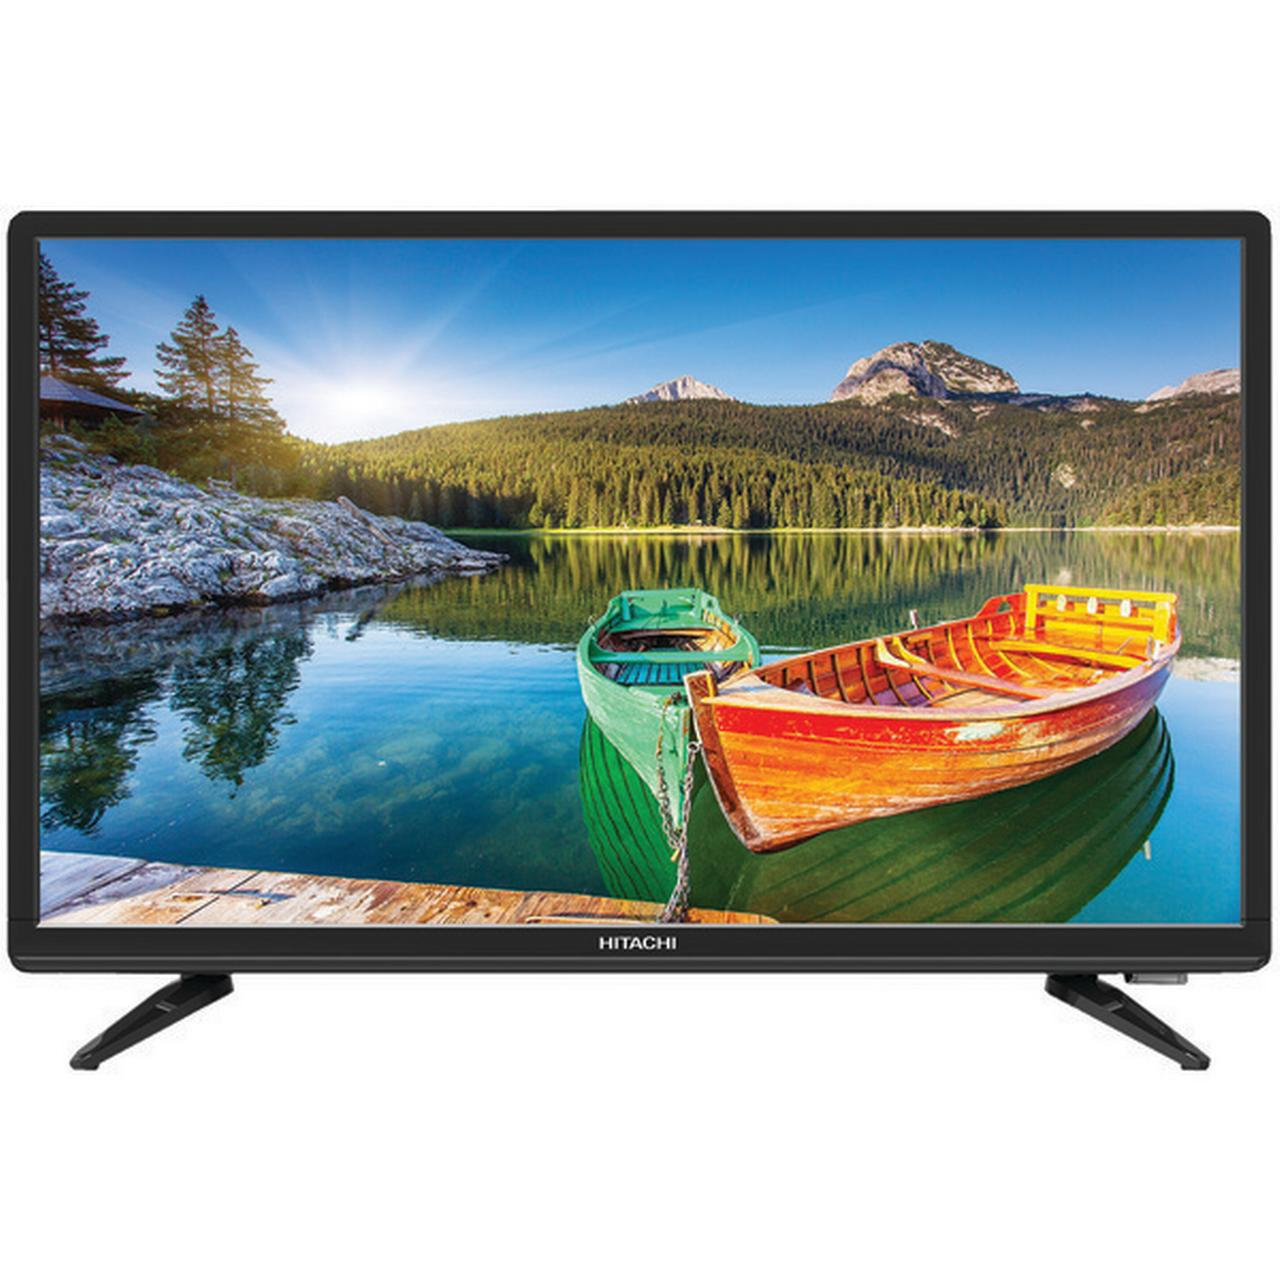 "Hitachi(R) 22E30 22"" Alpha Series 1080p LED HDTV"